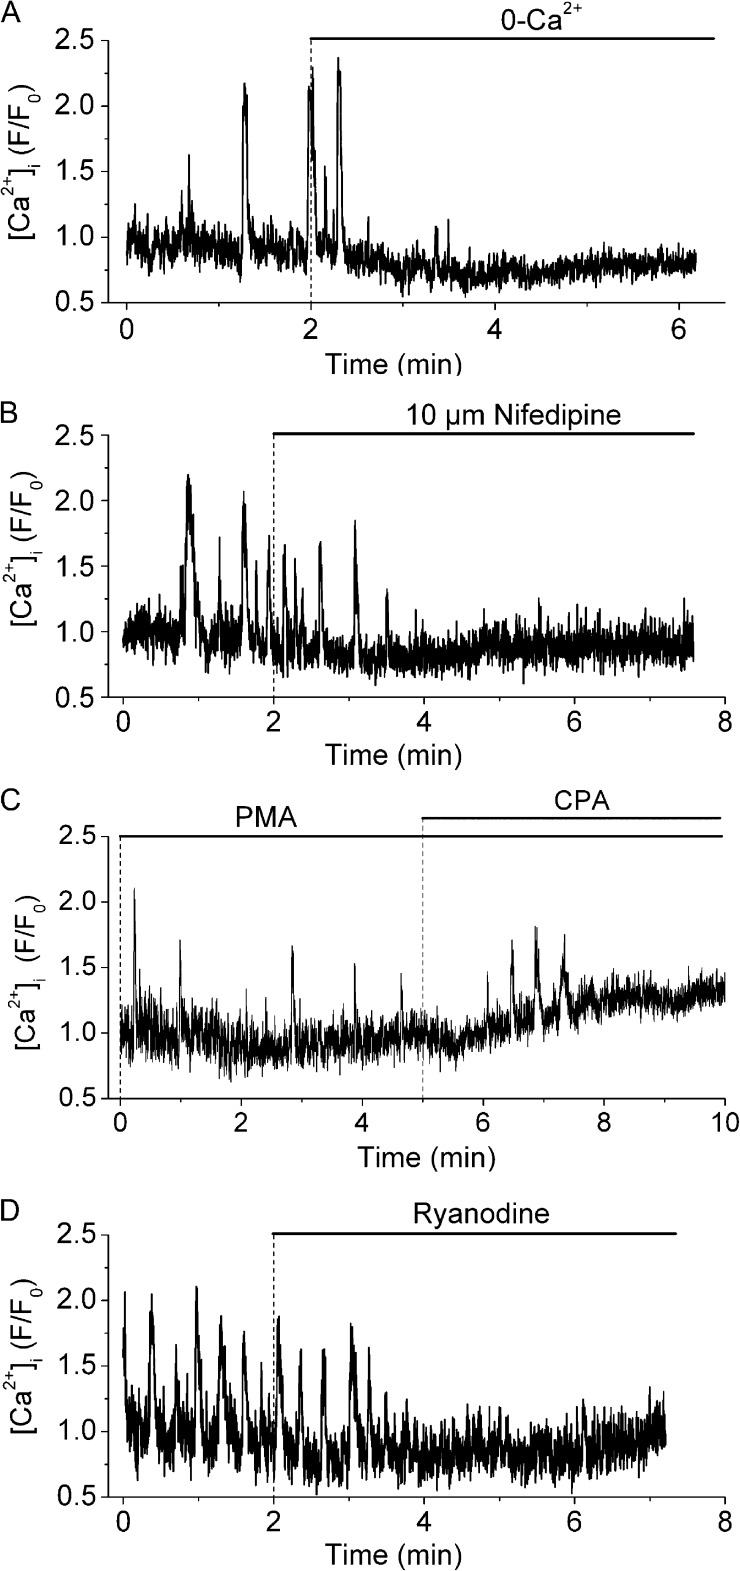 Effect of extracellular Ca 2+ removal, nifedipine, CPA, and ryanodine on PMA-induced Ca 2+ oscillations. Ca 2+ oscillations in single airway SMCs induced by 10 µM PMA (added 30 min before the recording started) and its inhibition by: (A) superfusion with Ca 2+ -free sHBSS, (B) 10 µM nifedipine, (C) 10 µM CPA, or (D) 25 µM ryanodine. Each trace is representative of four experiments in lung slices from three mice.